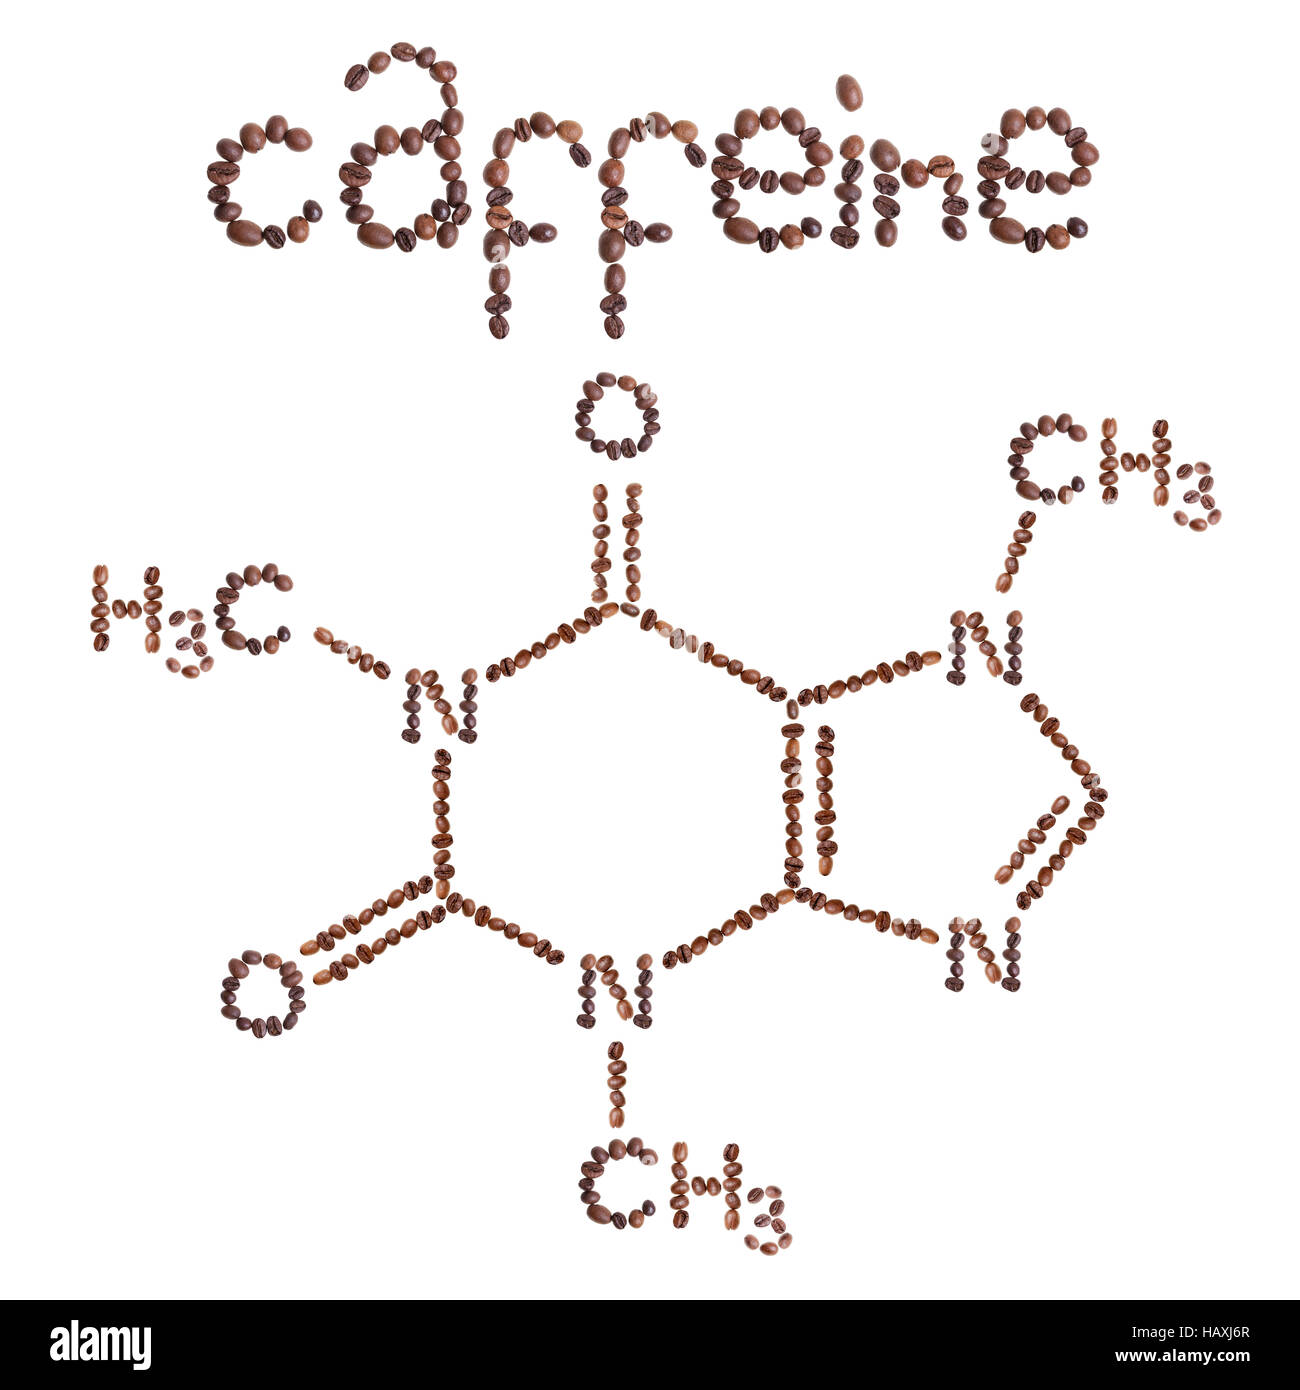 hight resolution of caffeine chemical molecule structure the structural formula of caffeine with dark brown coffee beans